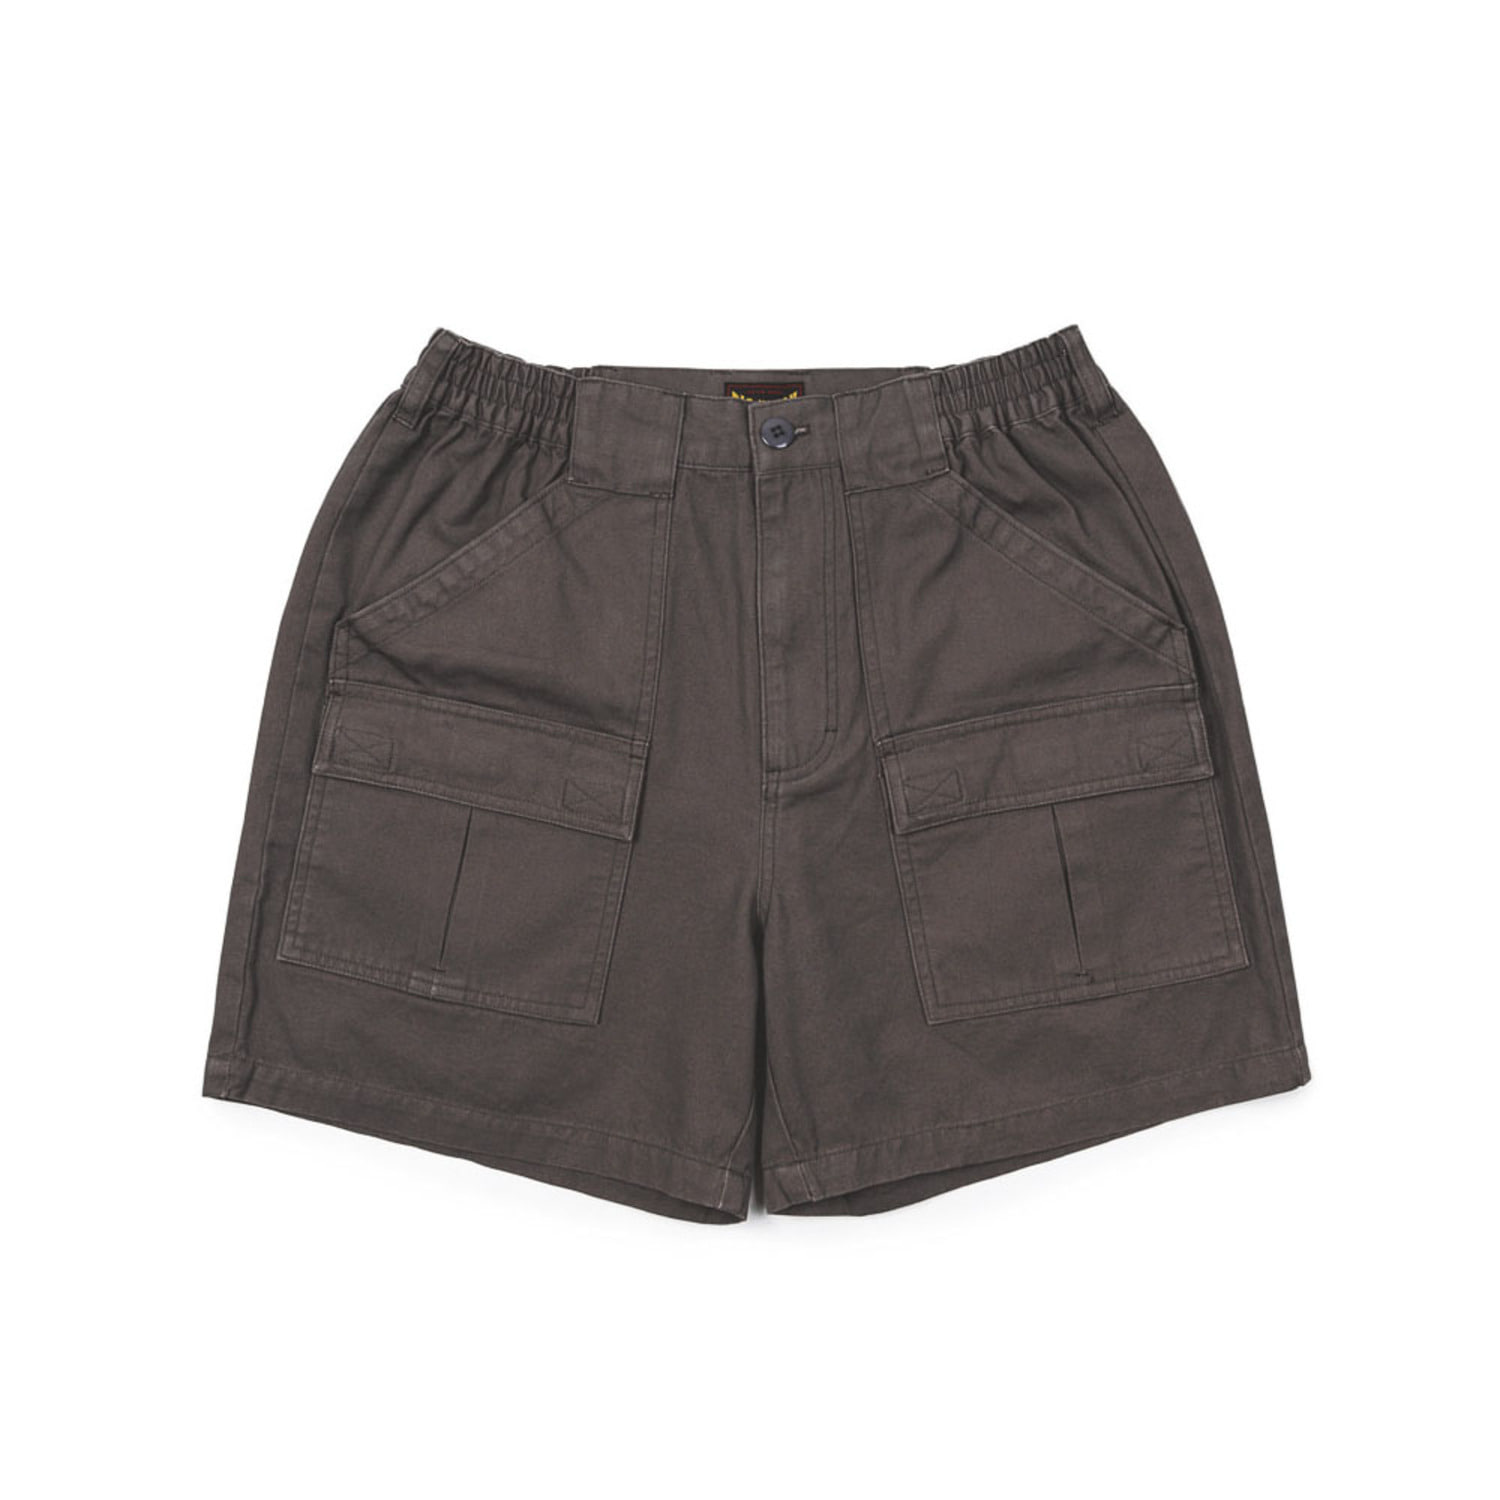 Big Union Cargo Shorts (Charcoal)